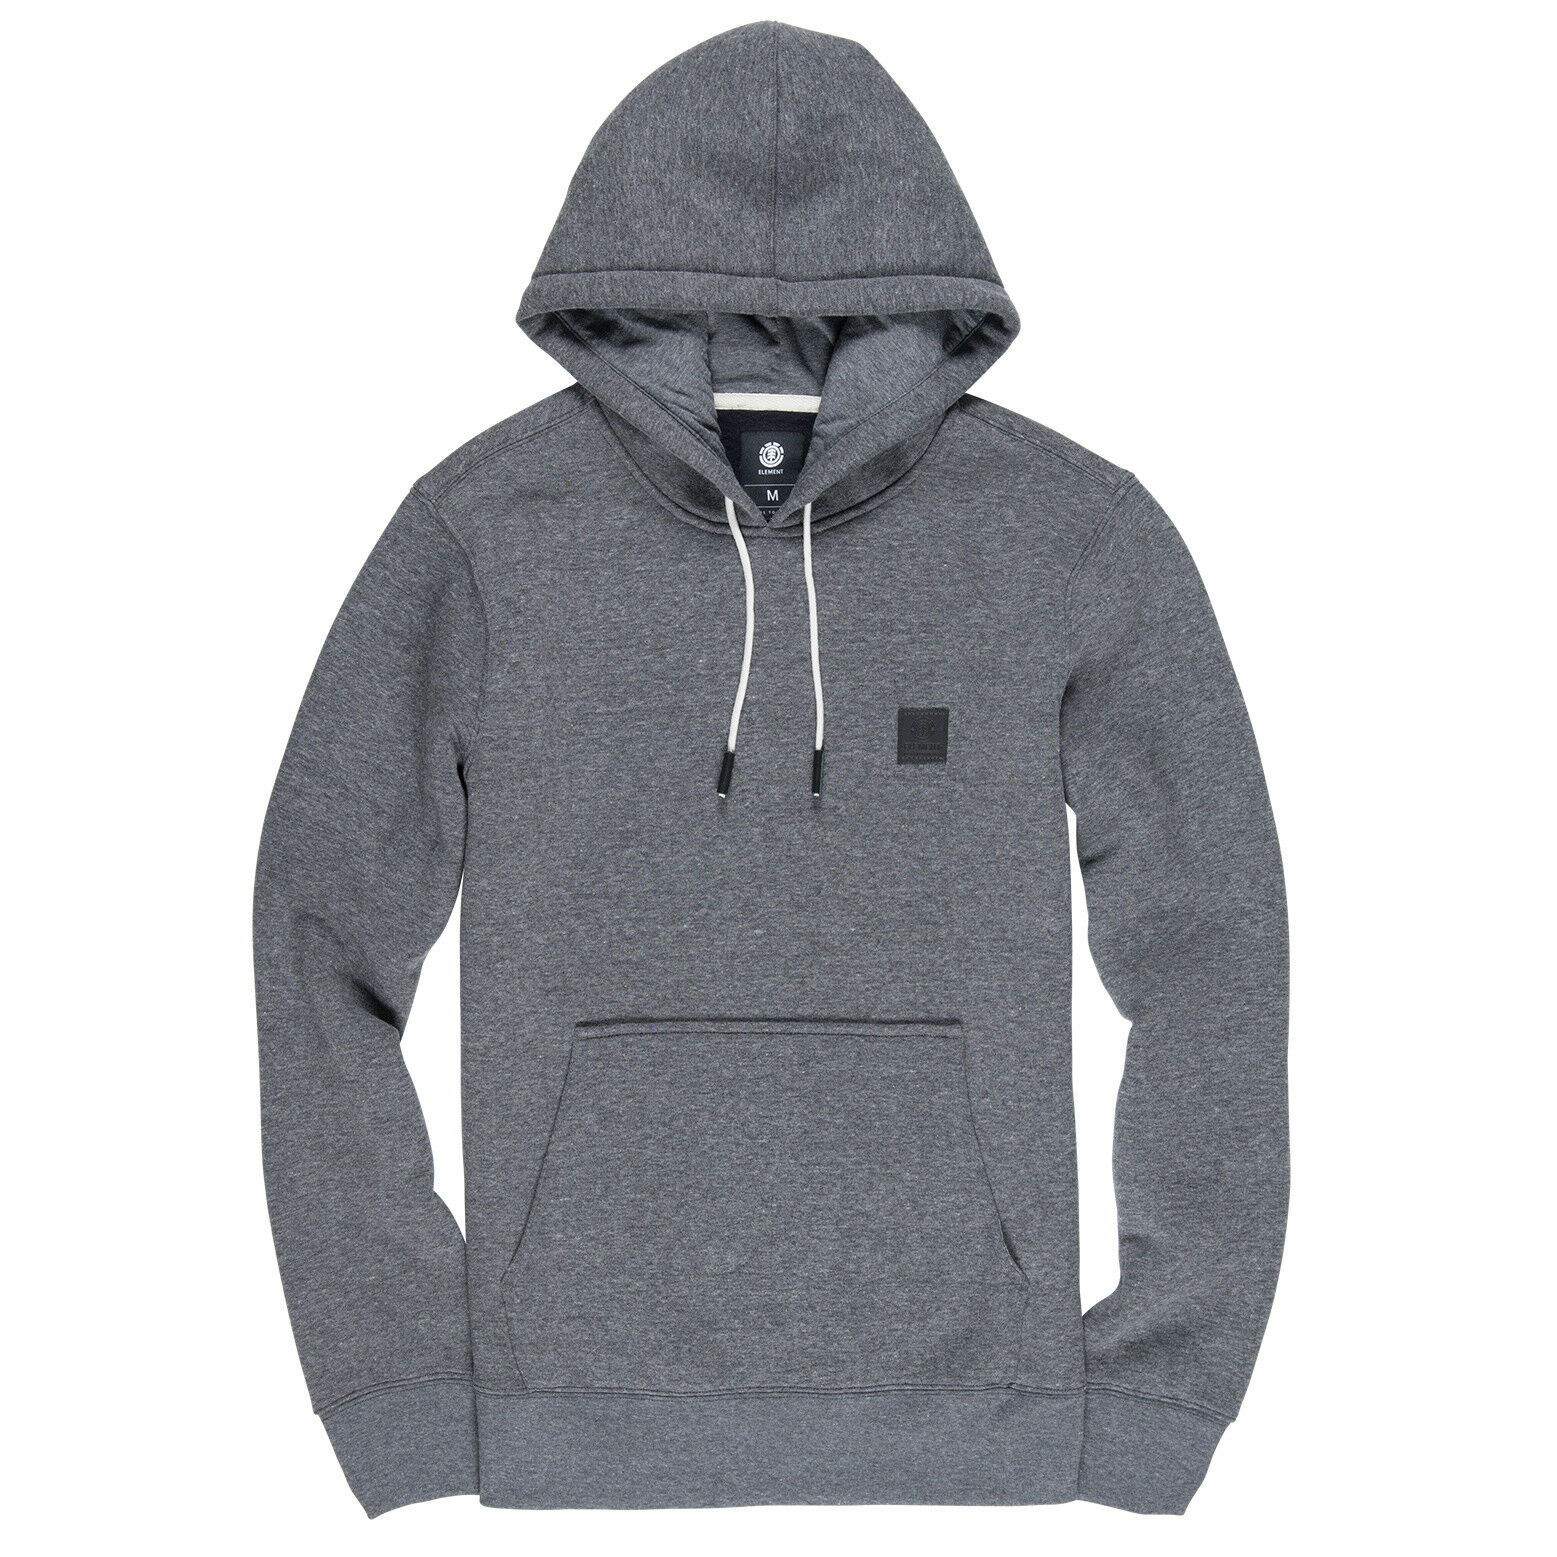 ELEMENT Heavy Männer Fleece Hoody Sweater charcoal heather L1HOA4ELF8 0519